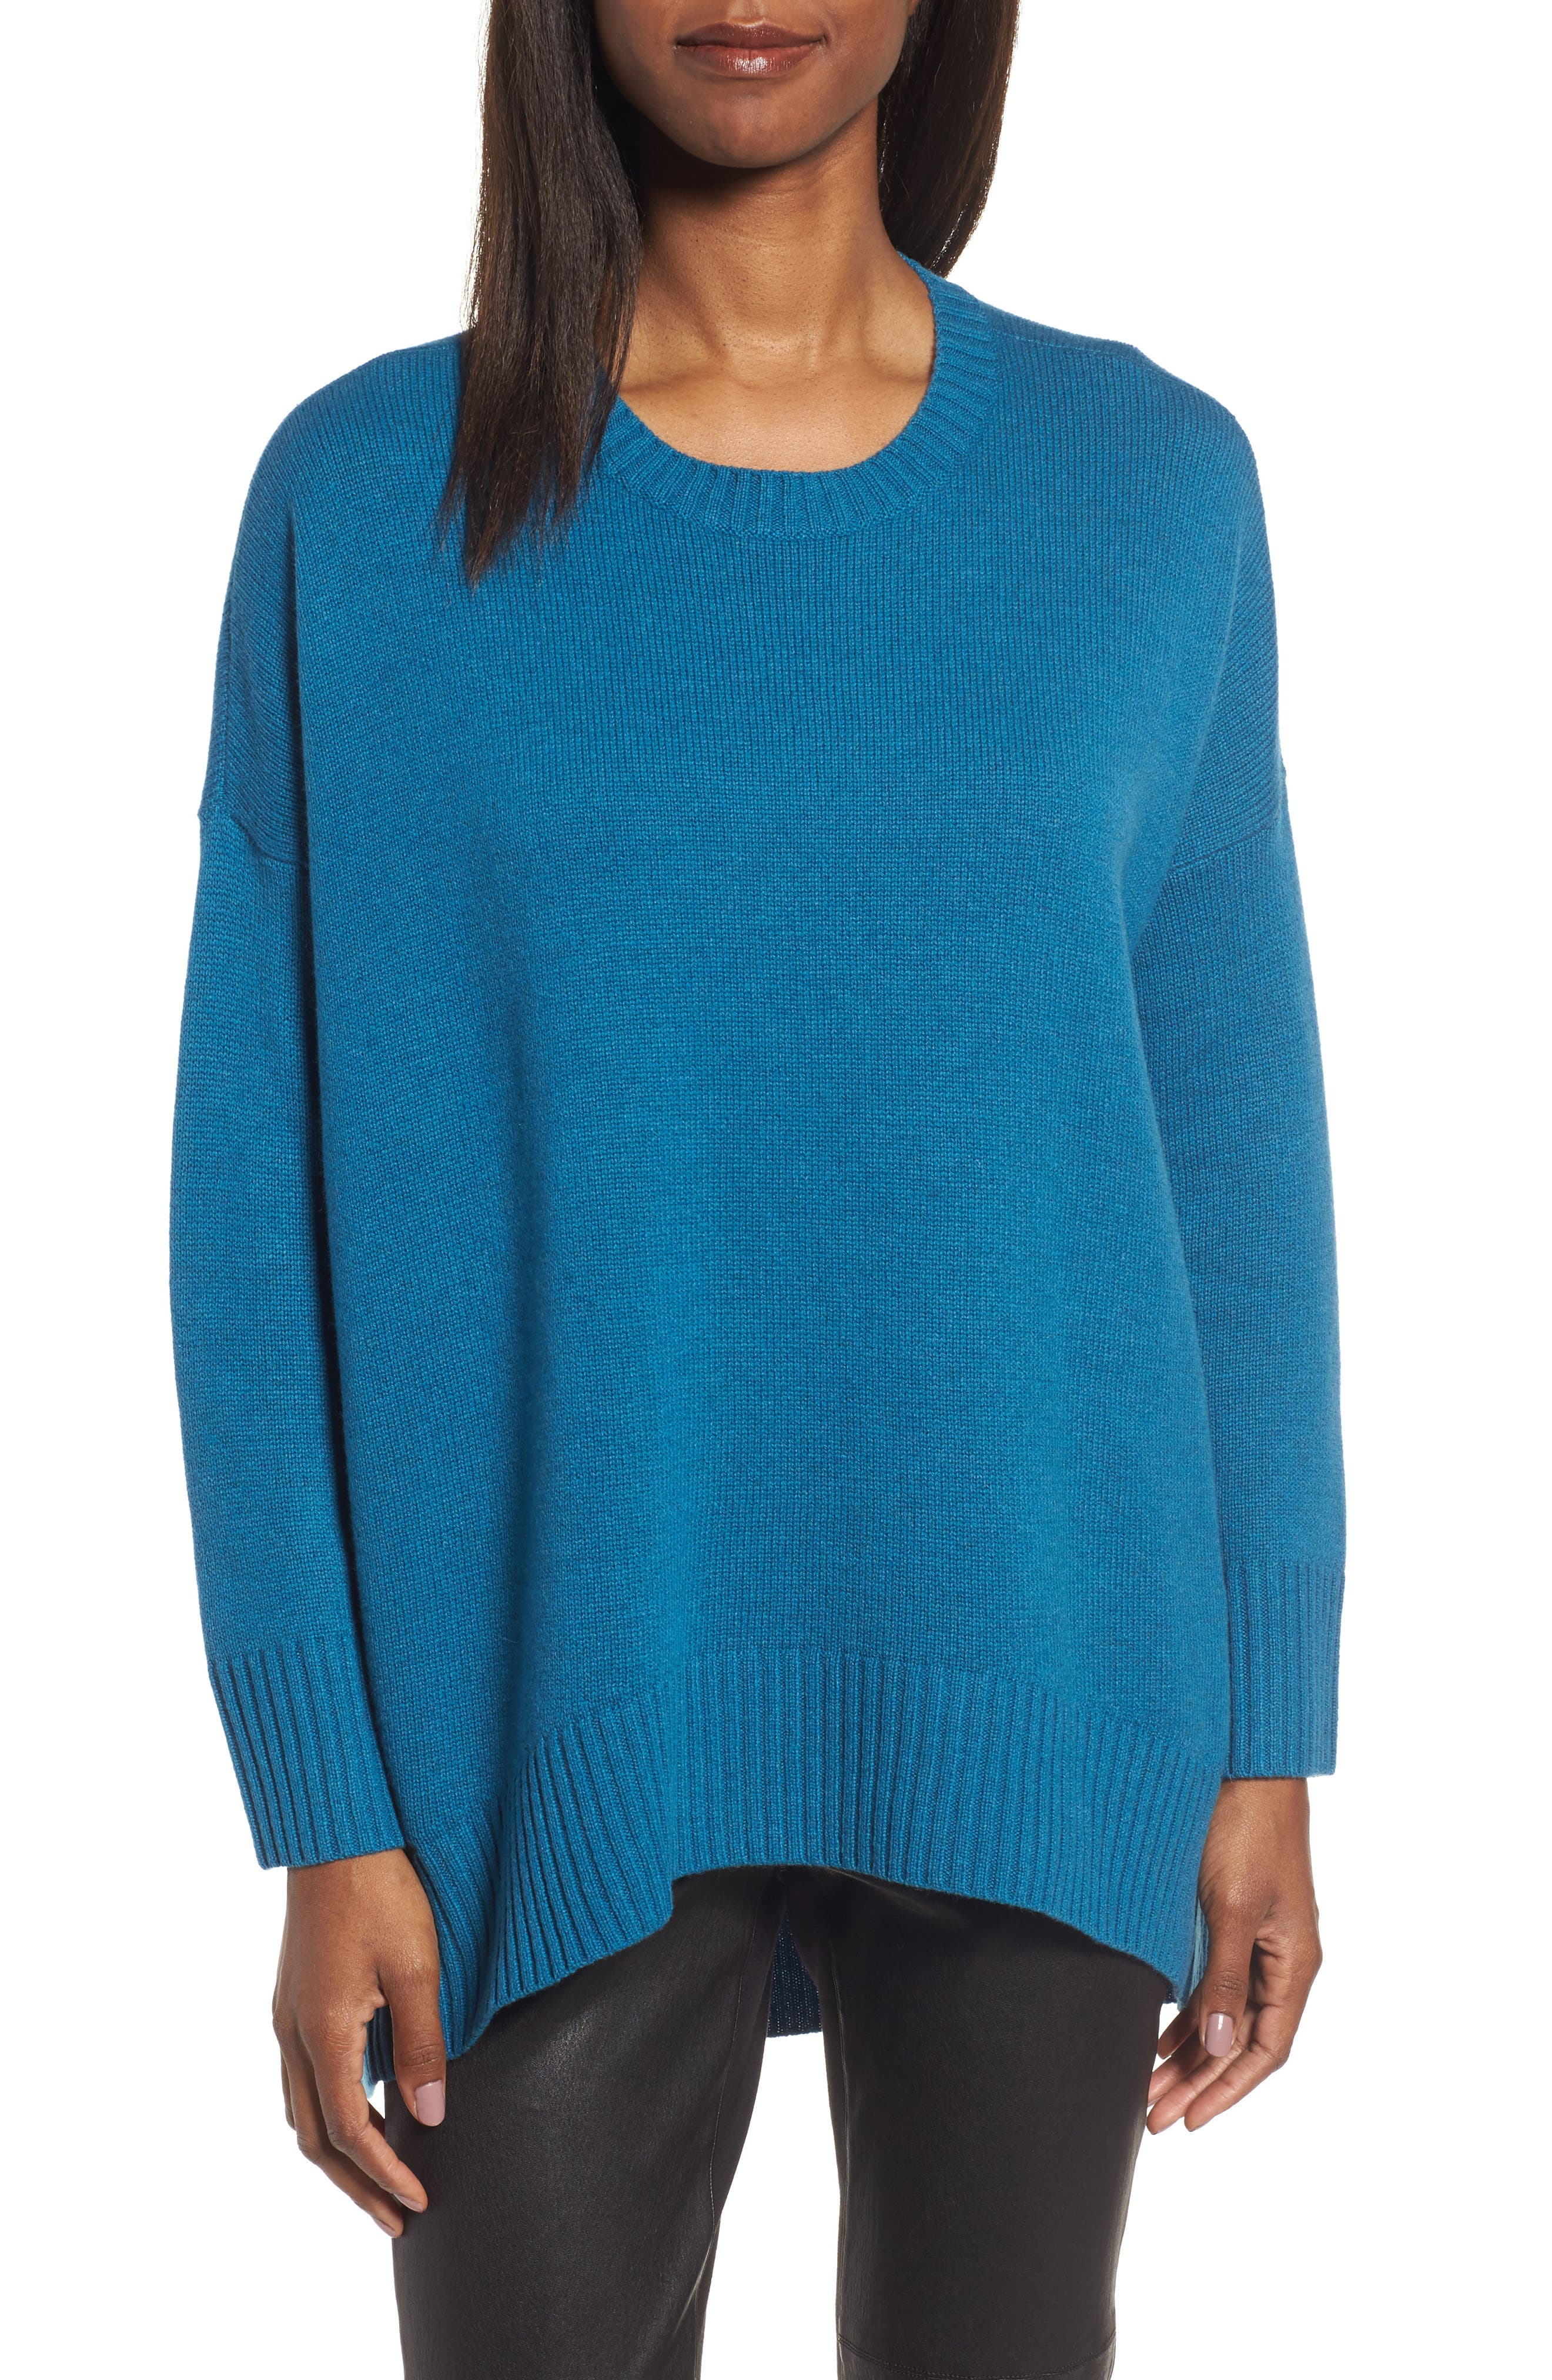 Eileen Fisher Cashmere & Wool Blend Oversize Sweater